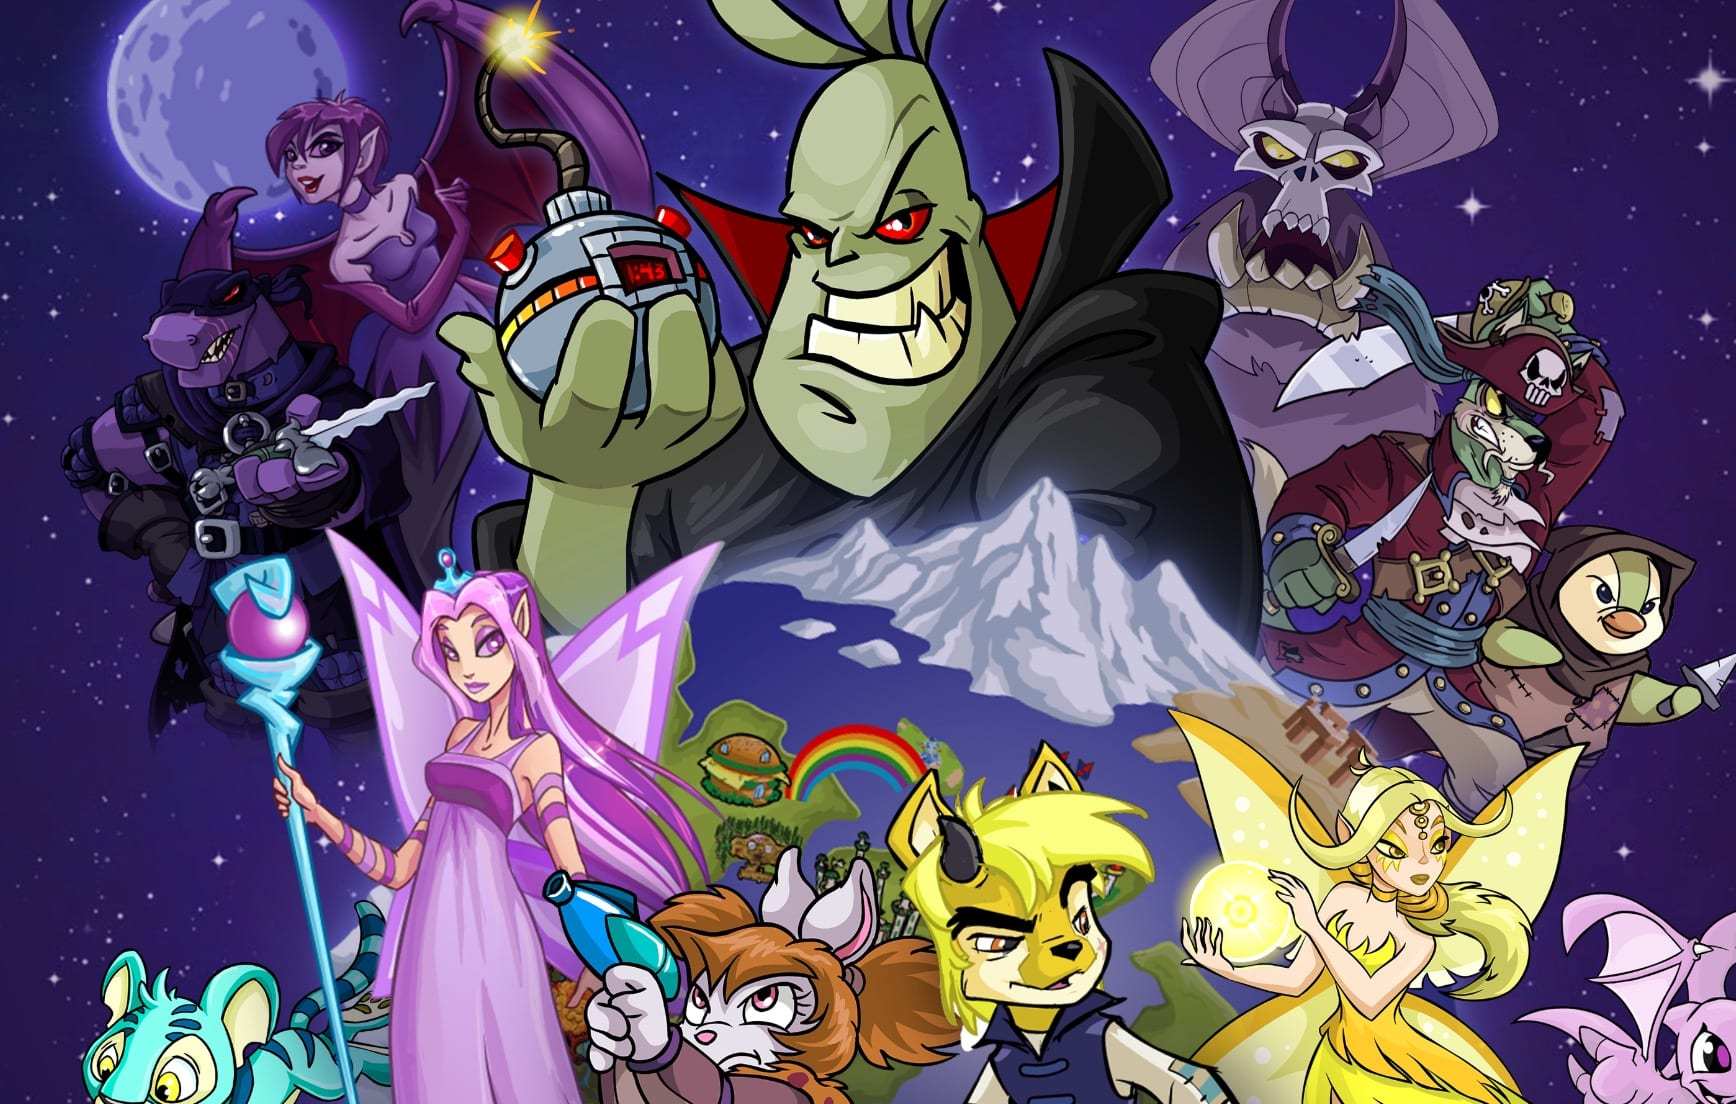 Neopets television show, animated TV series